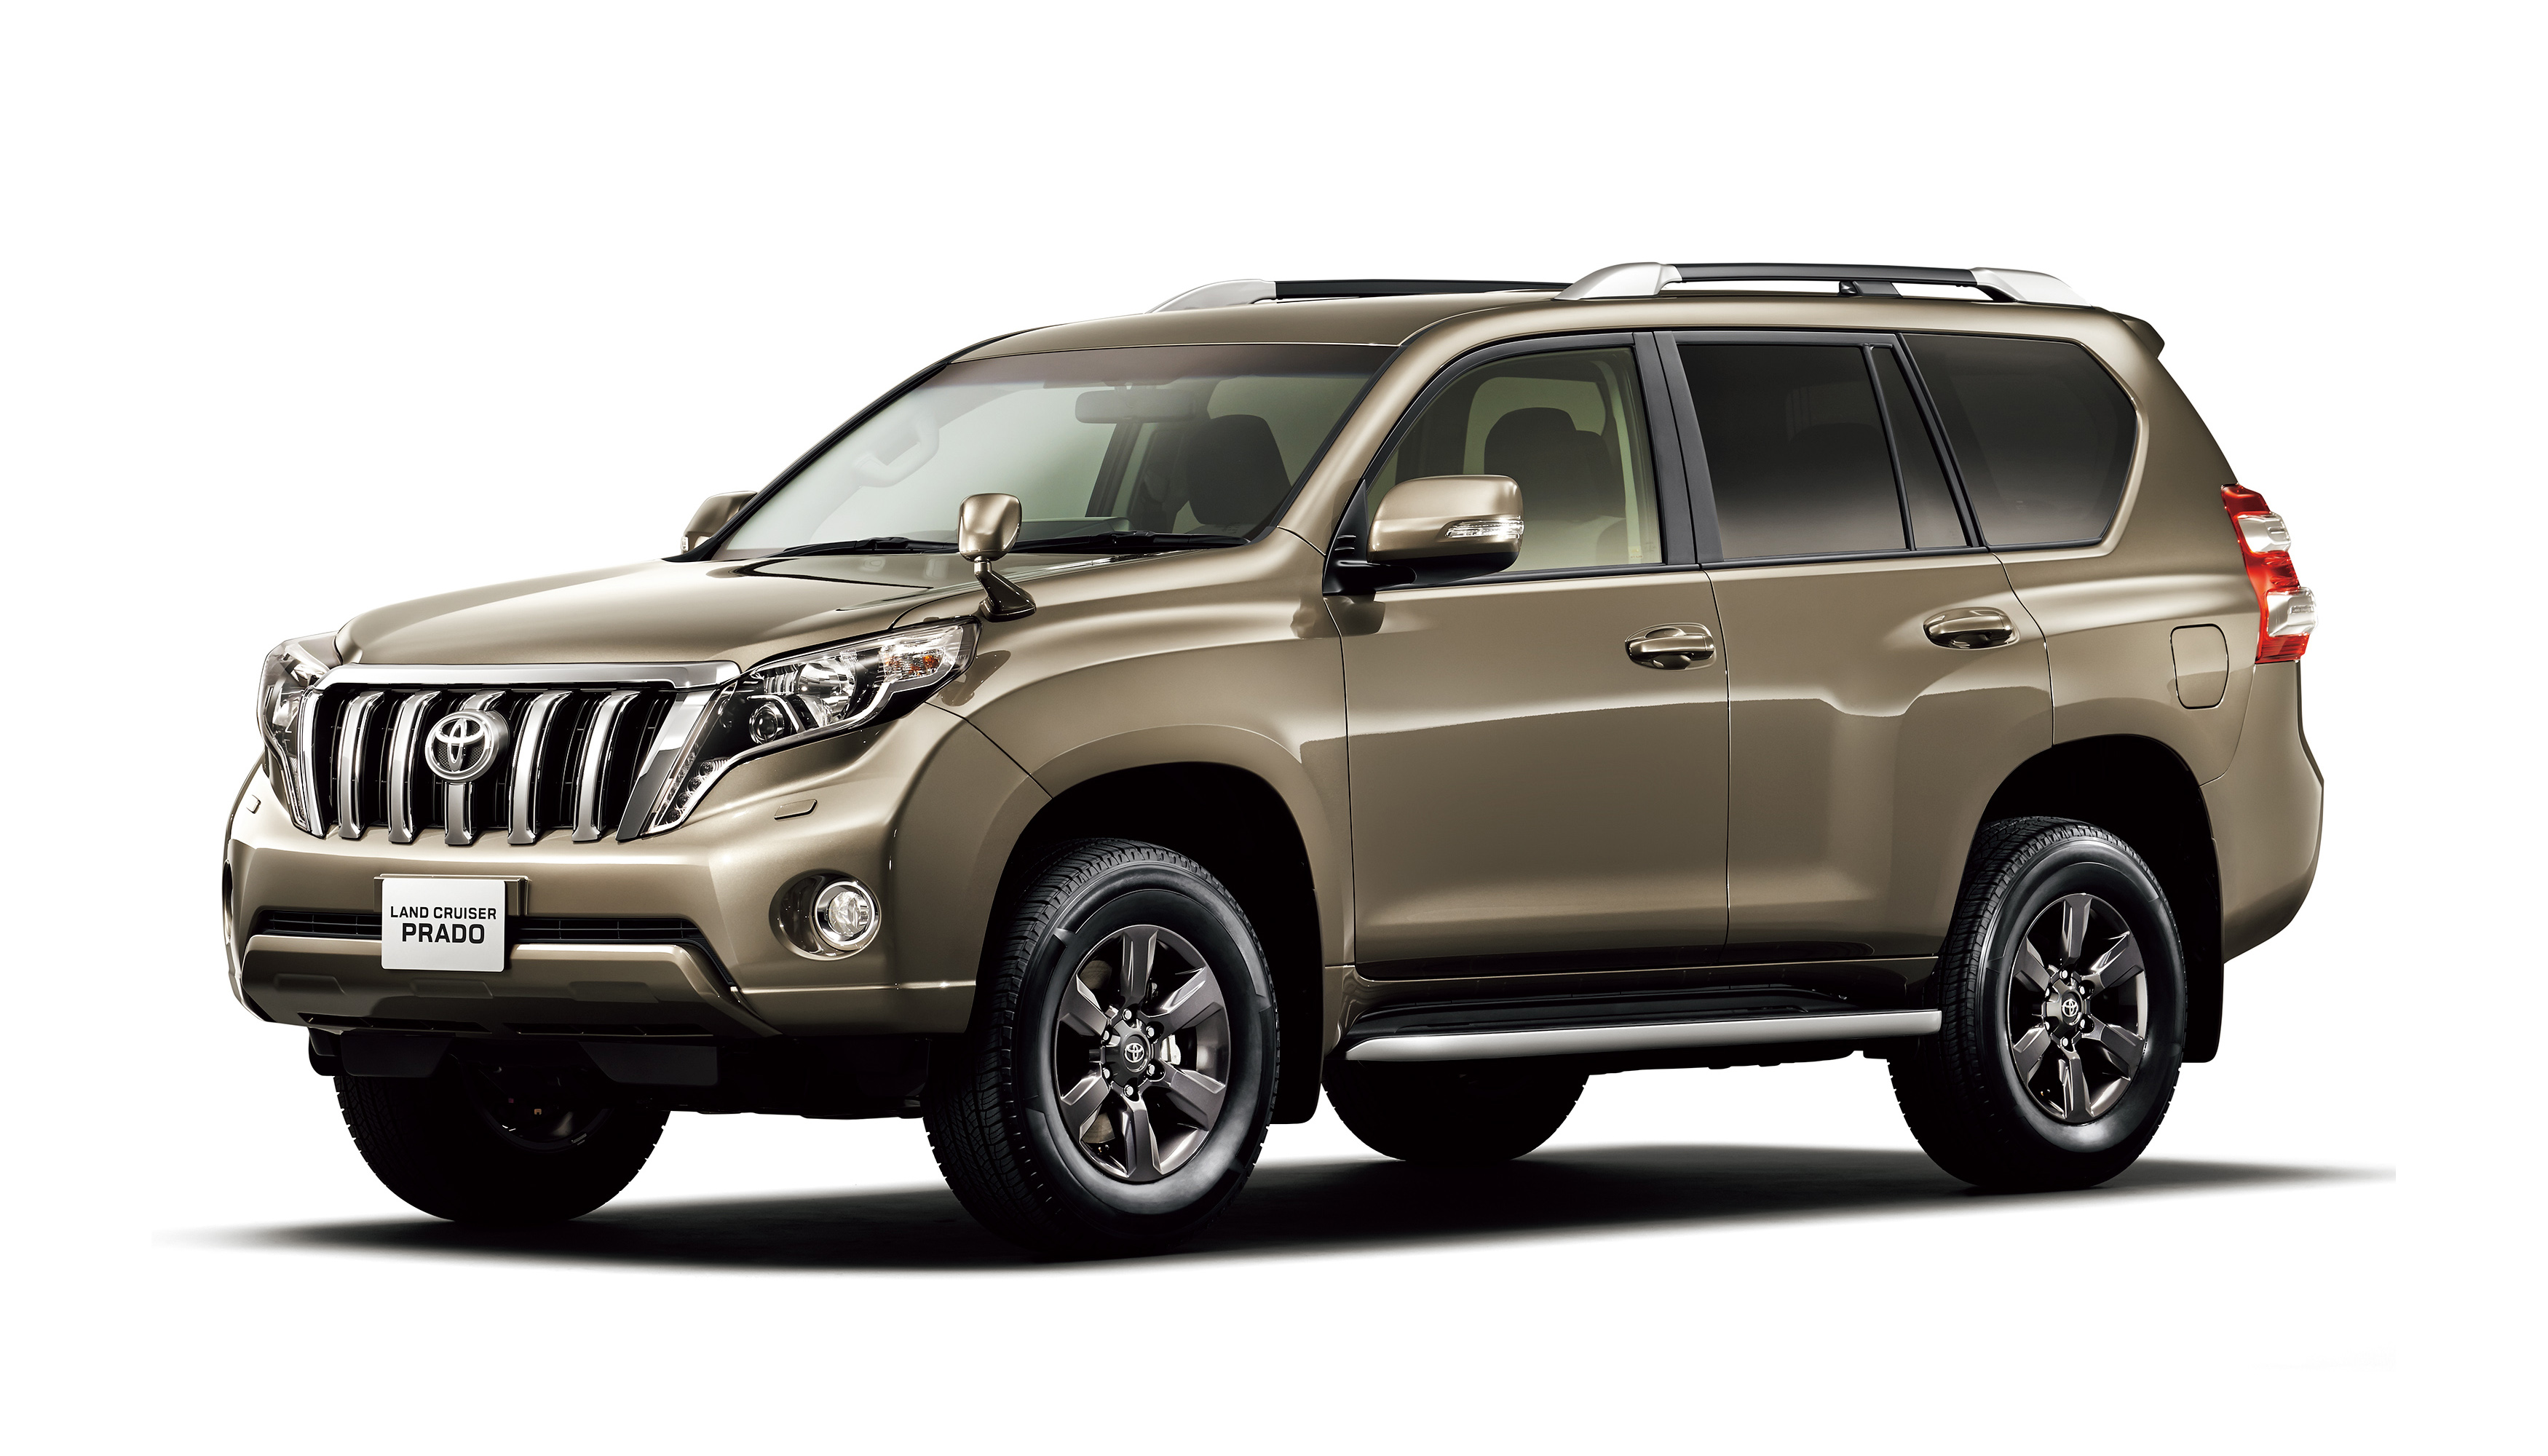 Toyota Land Cruiser Prado 150 best photo